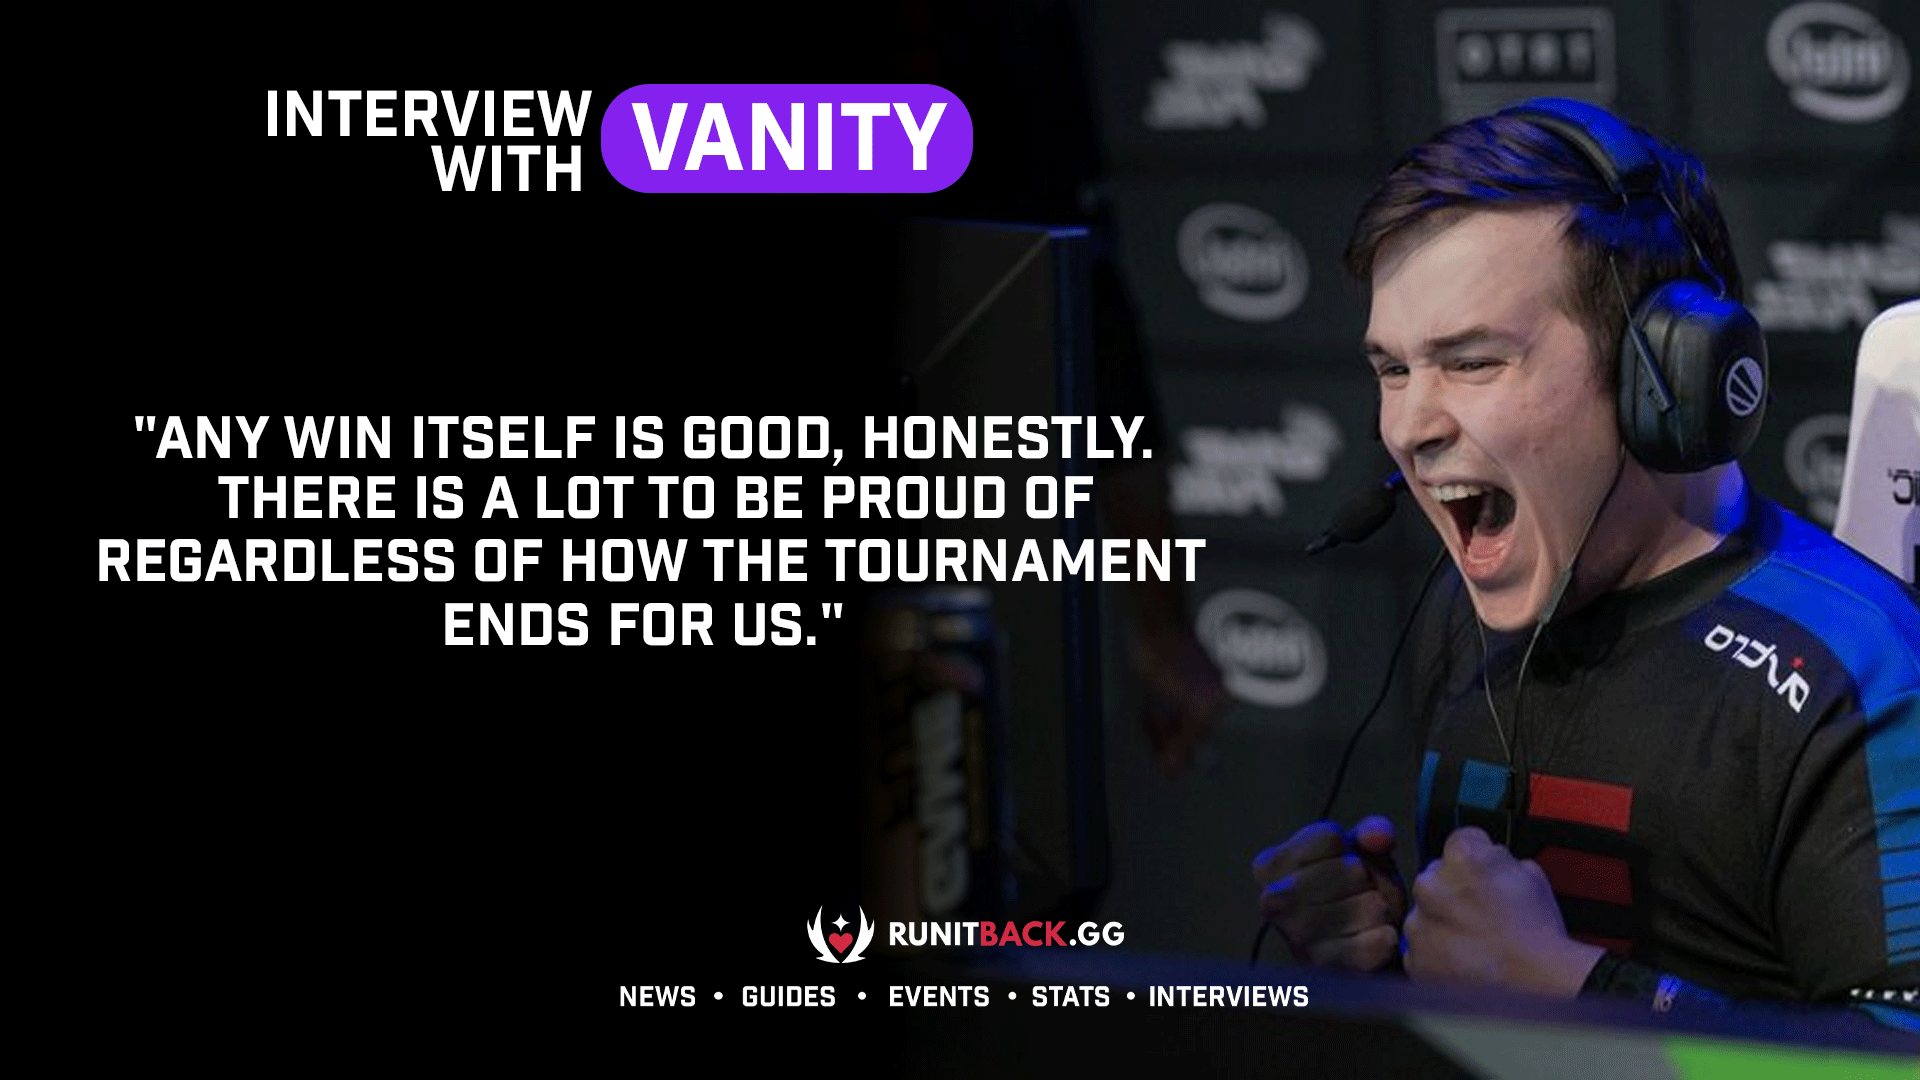 Version1's vanity is proud of team's progress and believes they will keep getting better